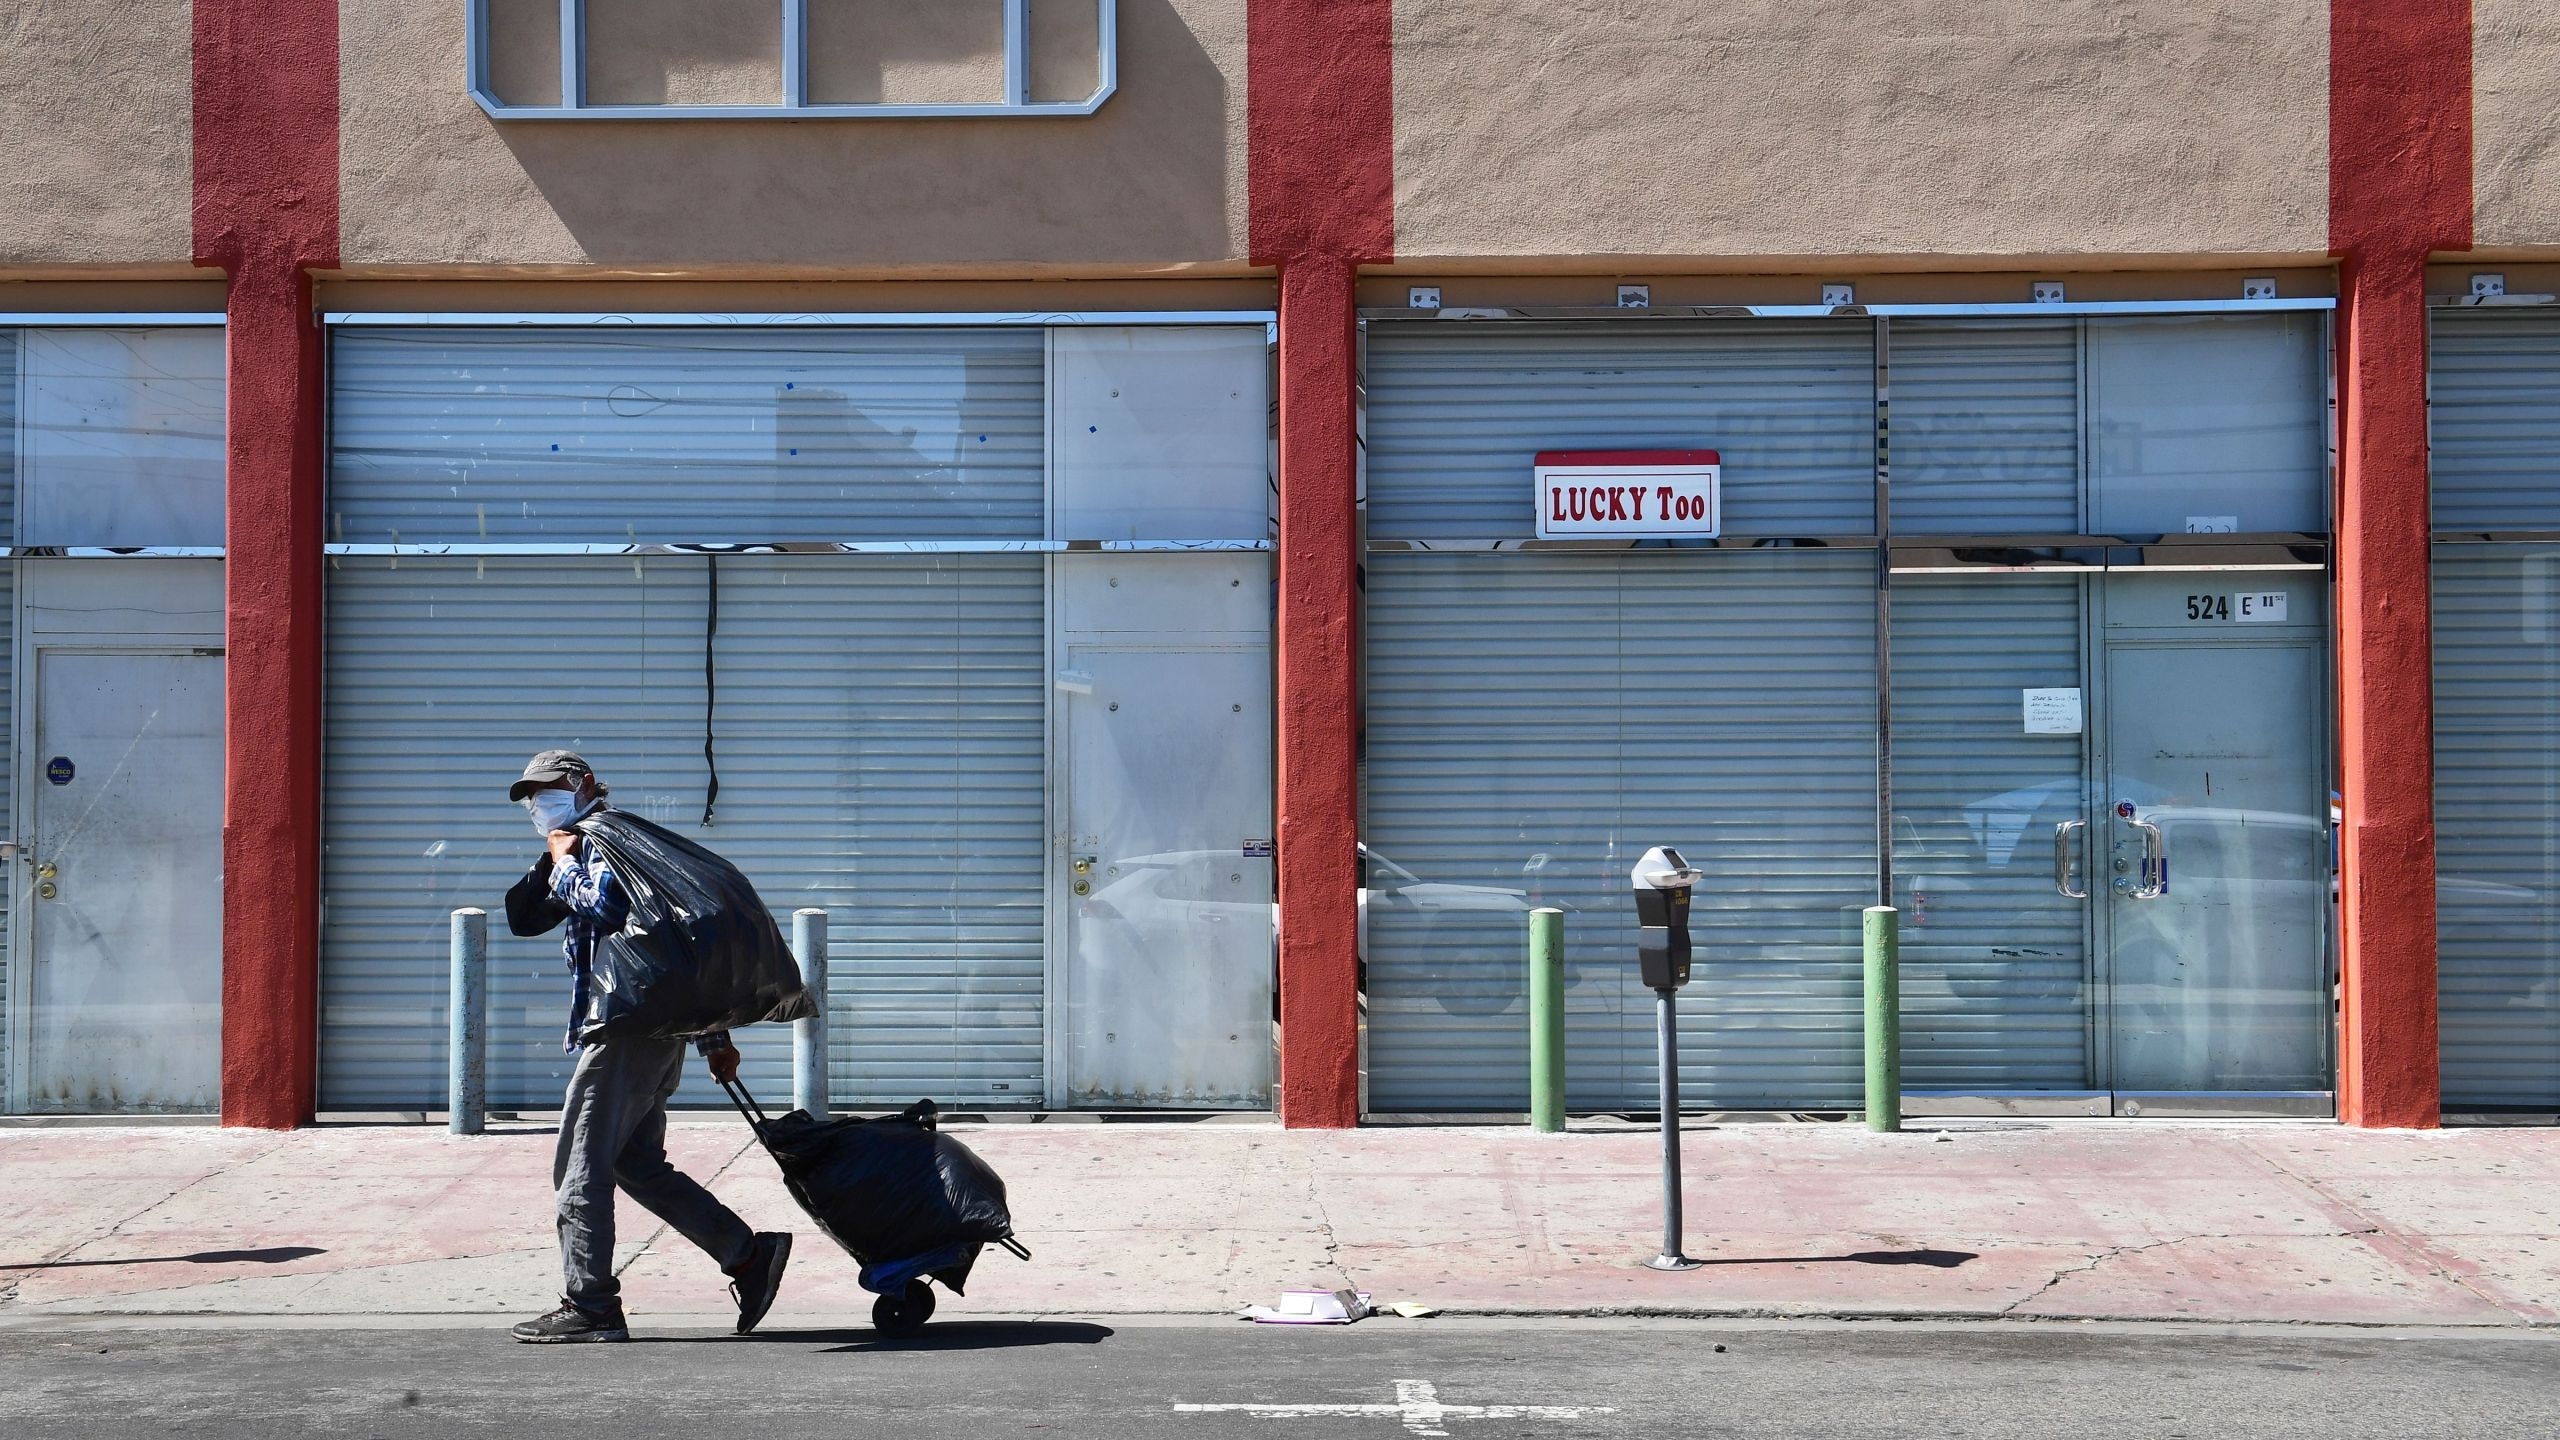 A man in a face mask walks past closed shopfronts in the Fashion District in Downtown Los Angeles, California on April 22, 2020, amid the novel coronavirus pandemic. (FREDERIC J. BROWN/AFP via Getty Images)